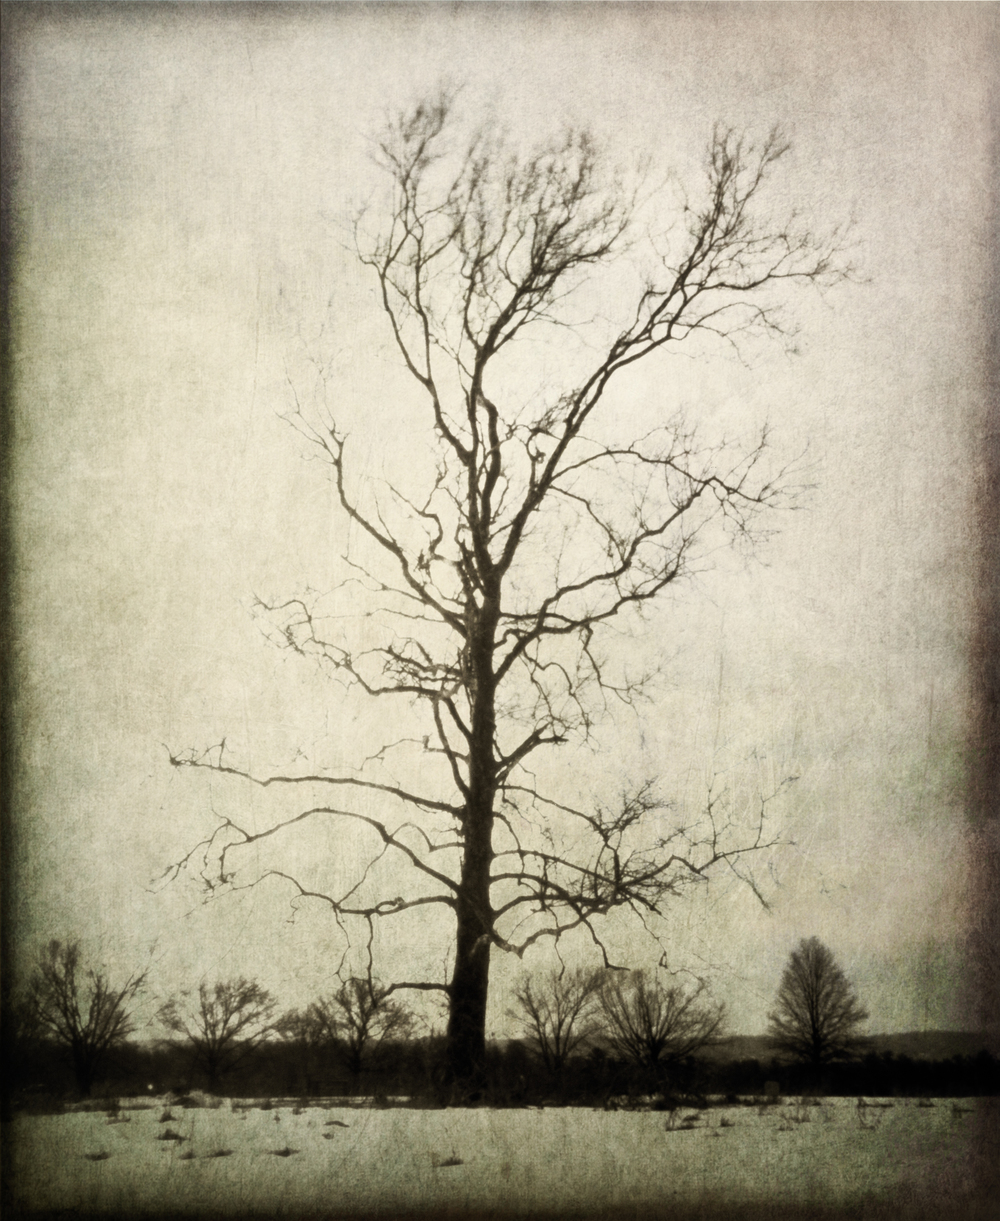 4x5_for_365_project_057_Valley_Forge_NHS_Tree.jpg